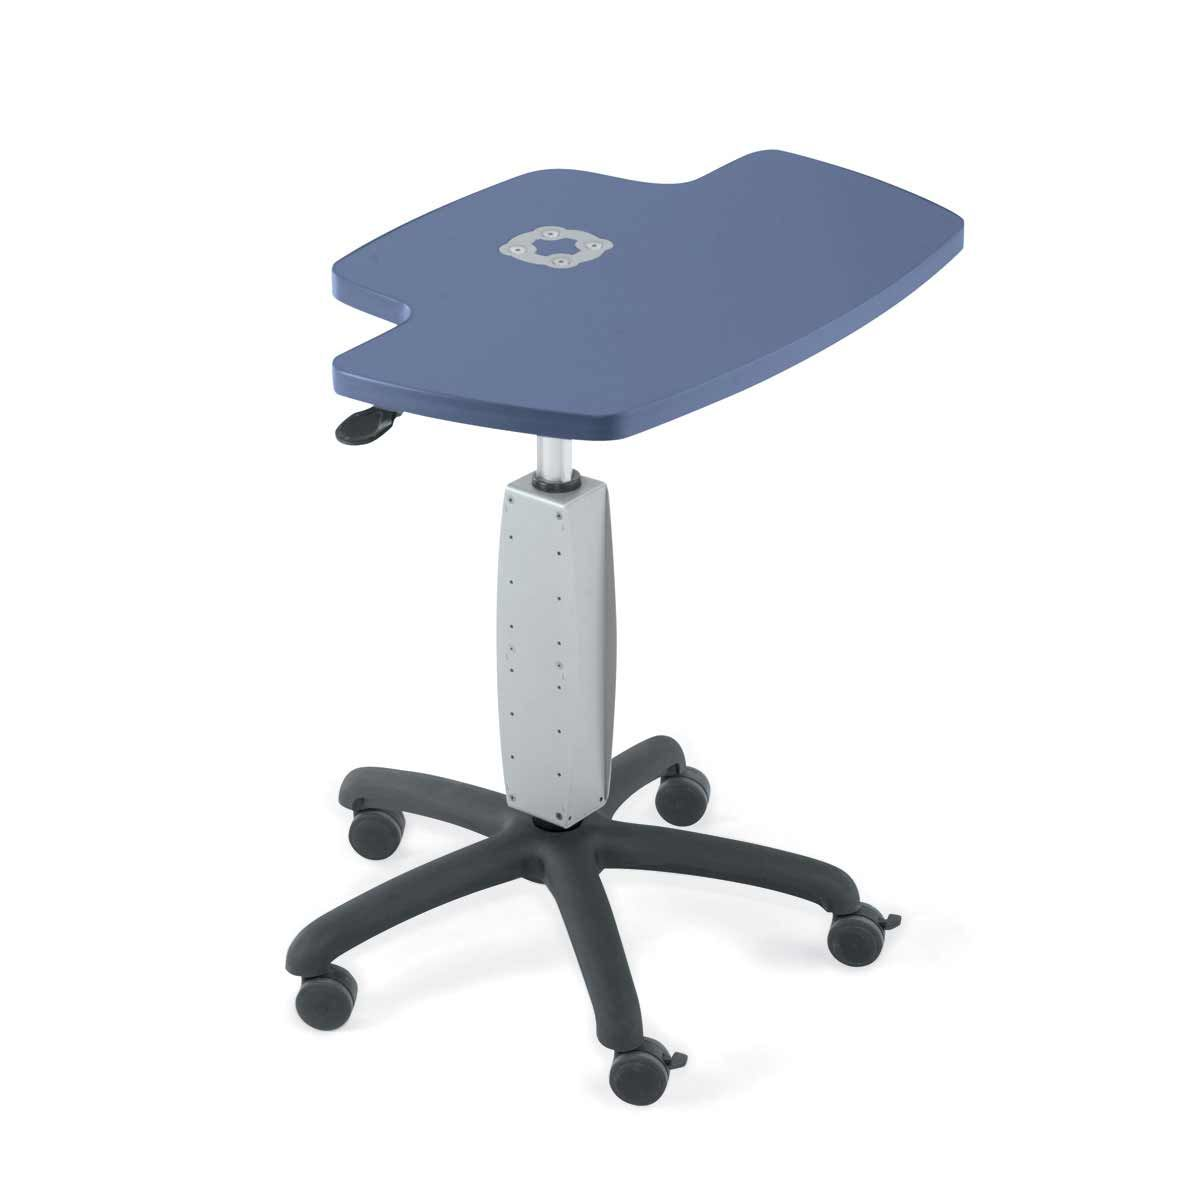 Anthro Height Adjule Mobile Laptop Cart Slj